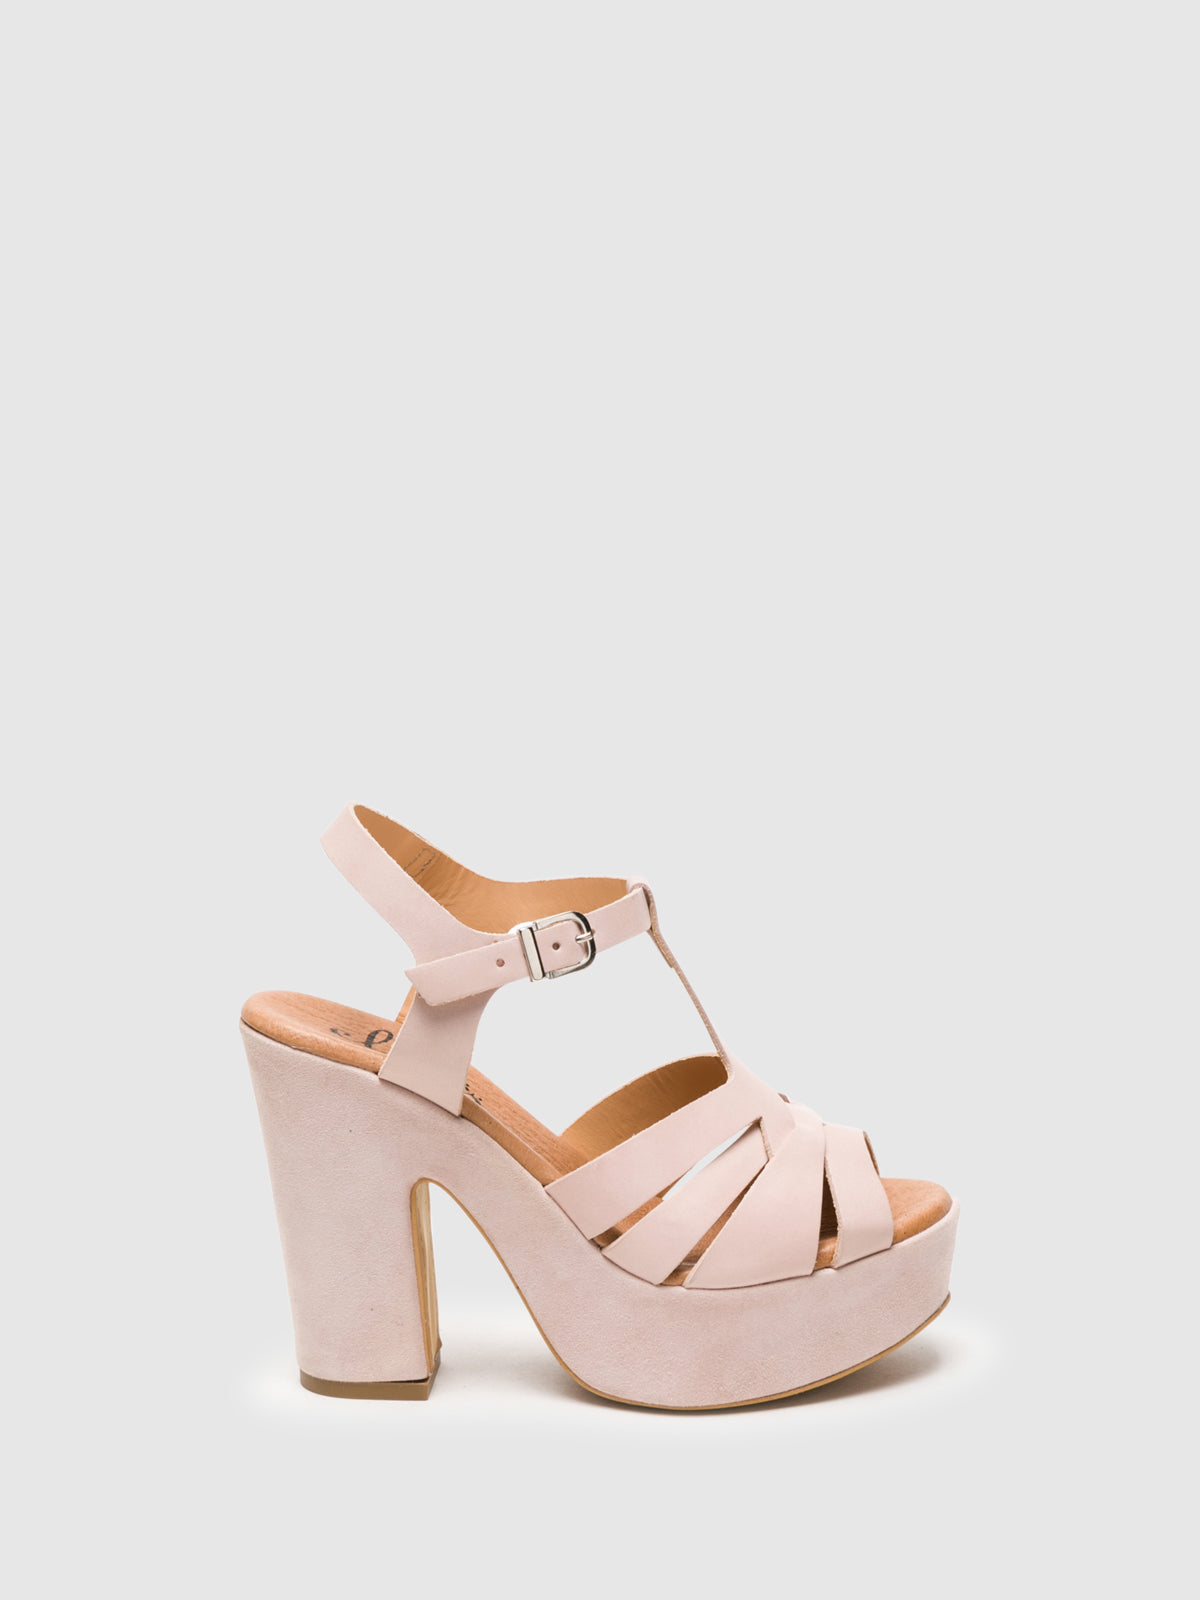 Clay's LightPink Buckle Sandals